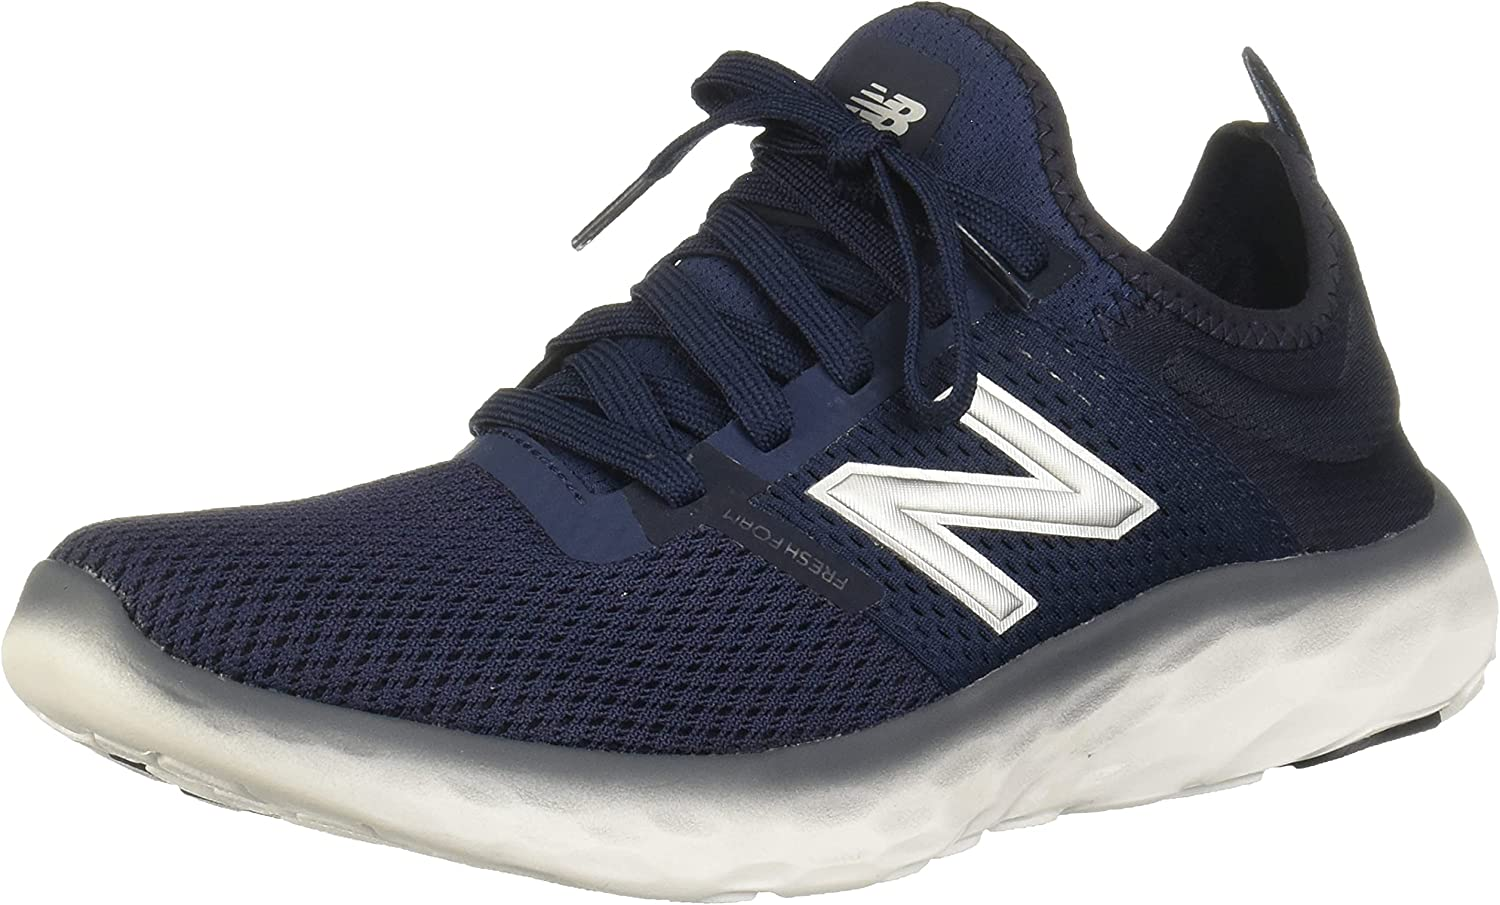 New Balance 40% Special price OFF Cheap Sale Men's Fresh Foam Lace-up Running Sport Shoe V2